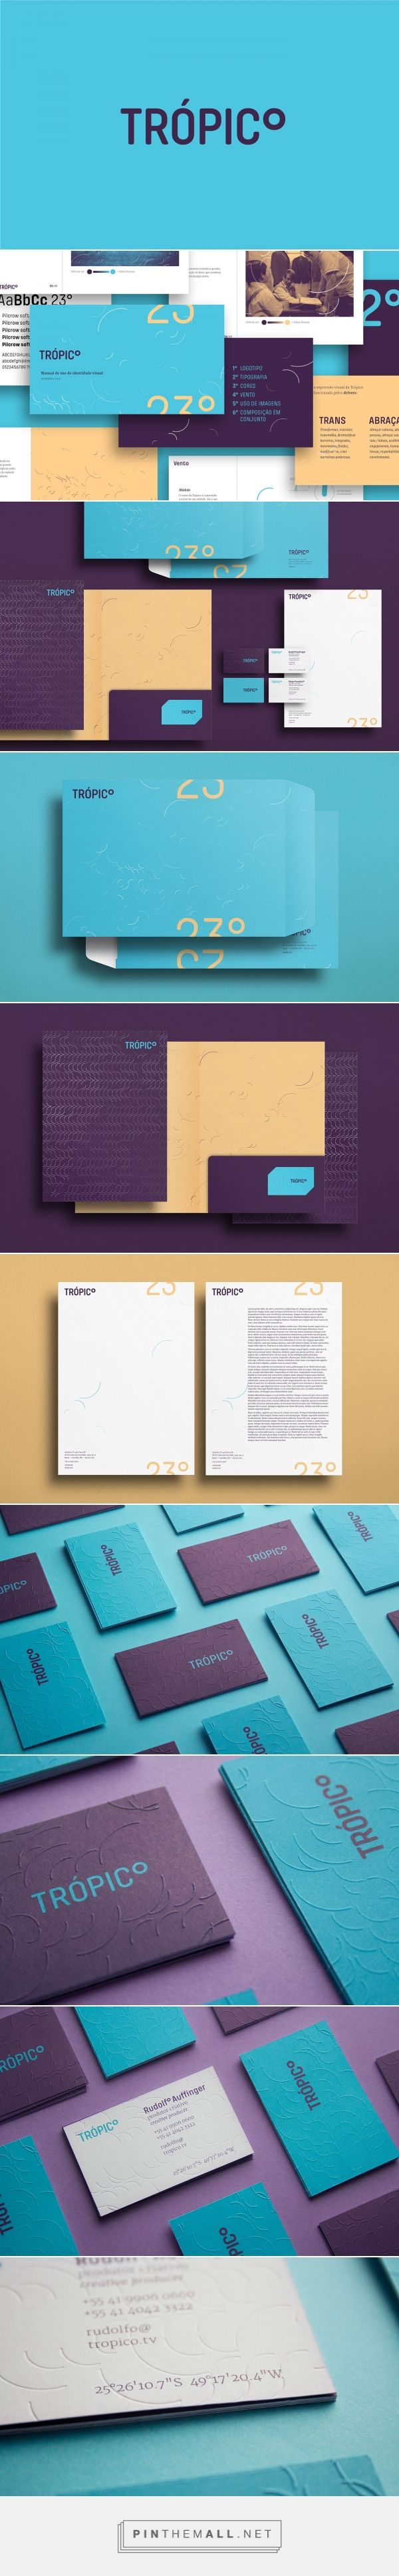 Tropico Production Company Branding by Carlos Bauer | Fivestar Branding Agency – Design and Branding Agency & Inspiration Gallery